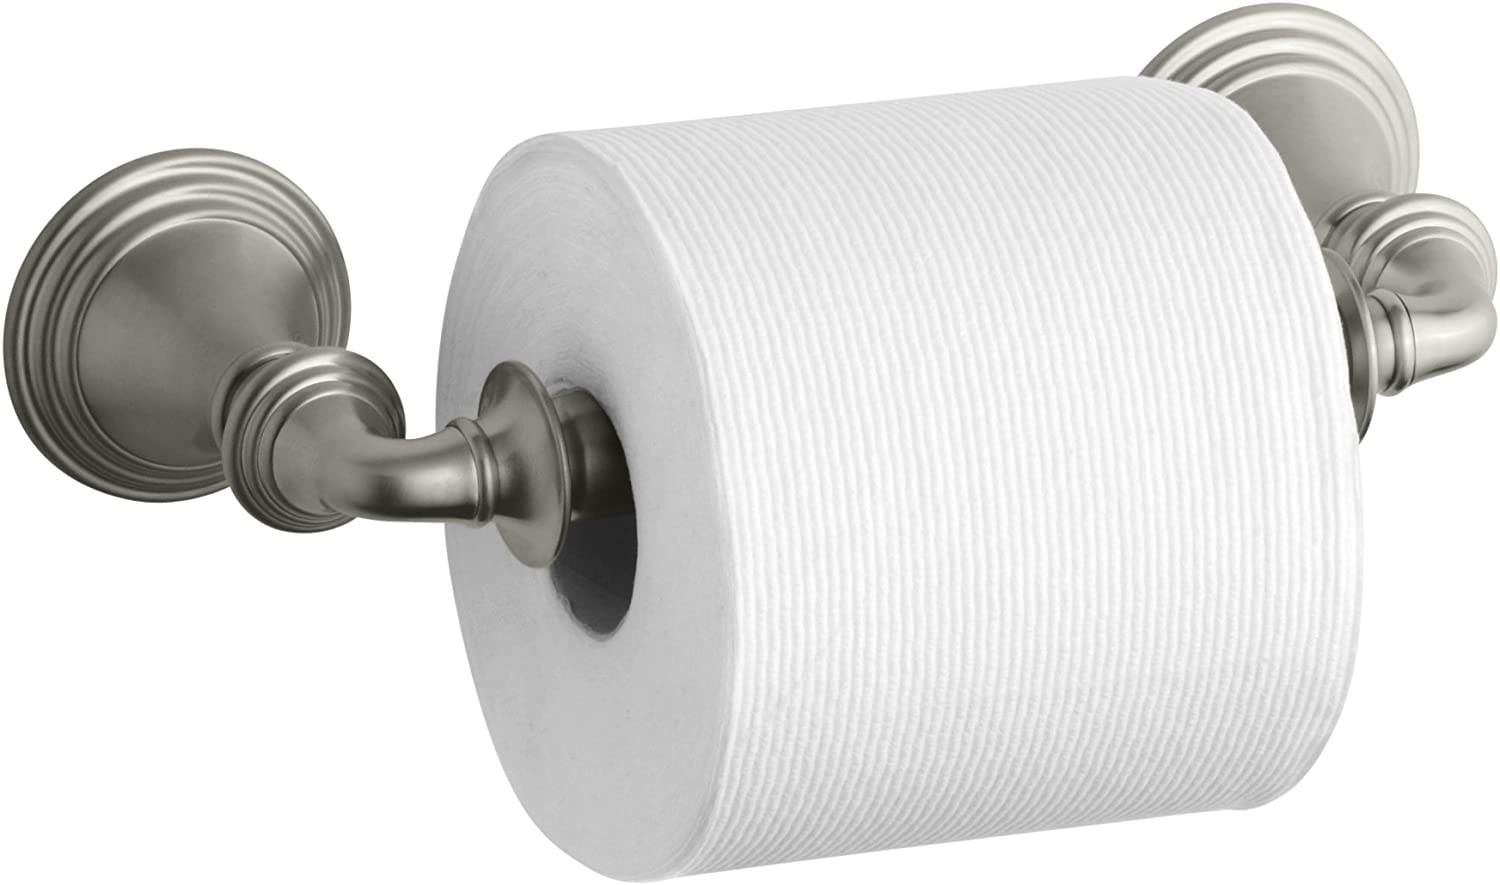 KOHLER K-10554-BN Devonshire Toilet Tissue Holder, Vibrant Brushed Nickel